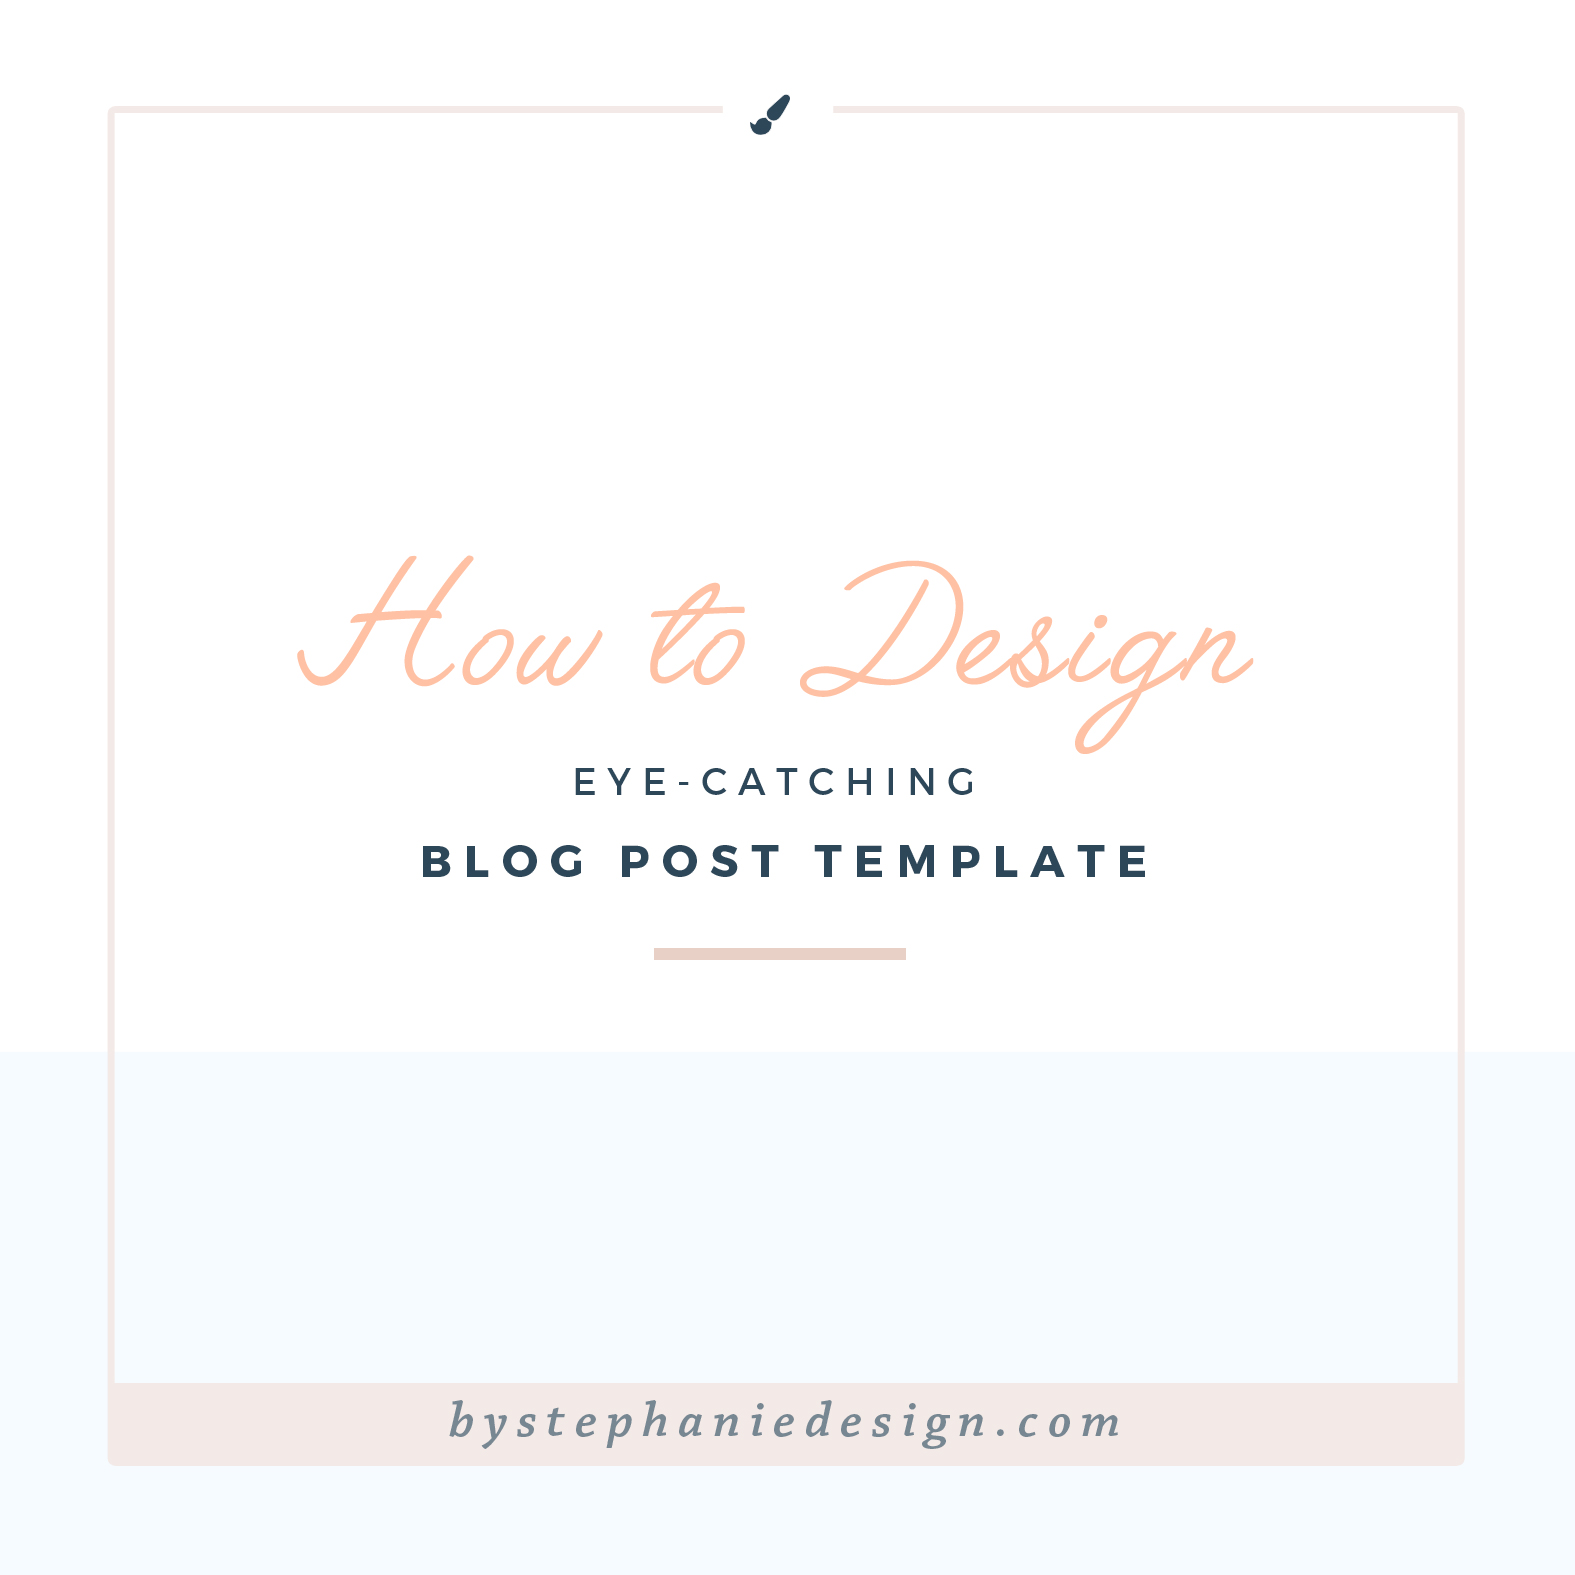 how to design eye-catching blog post templates - by stephanie design